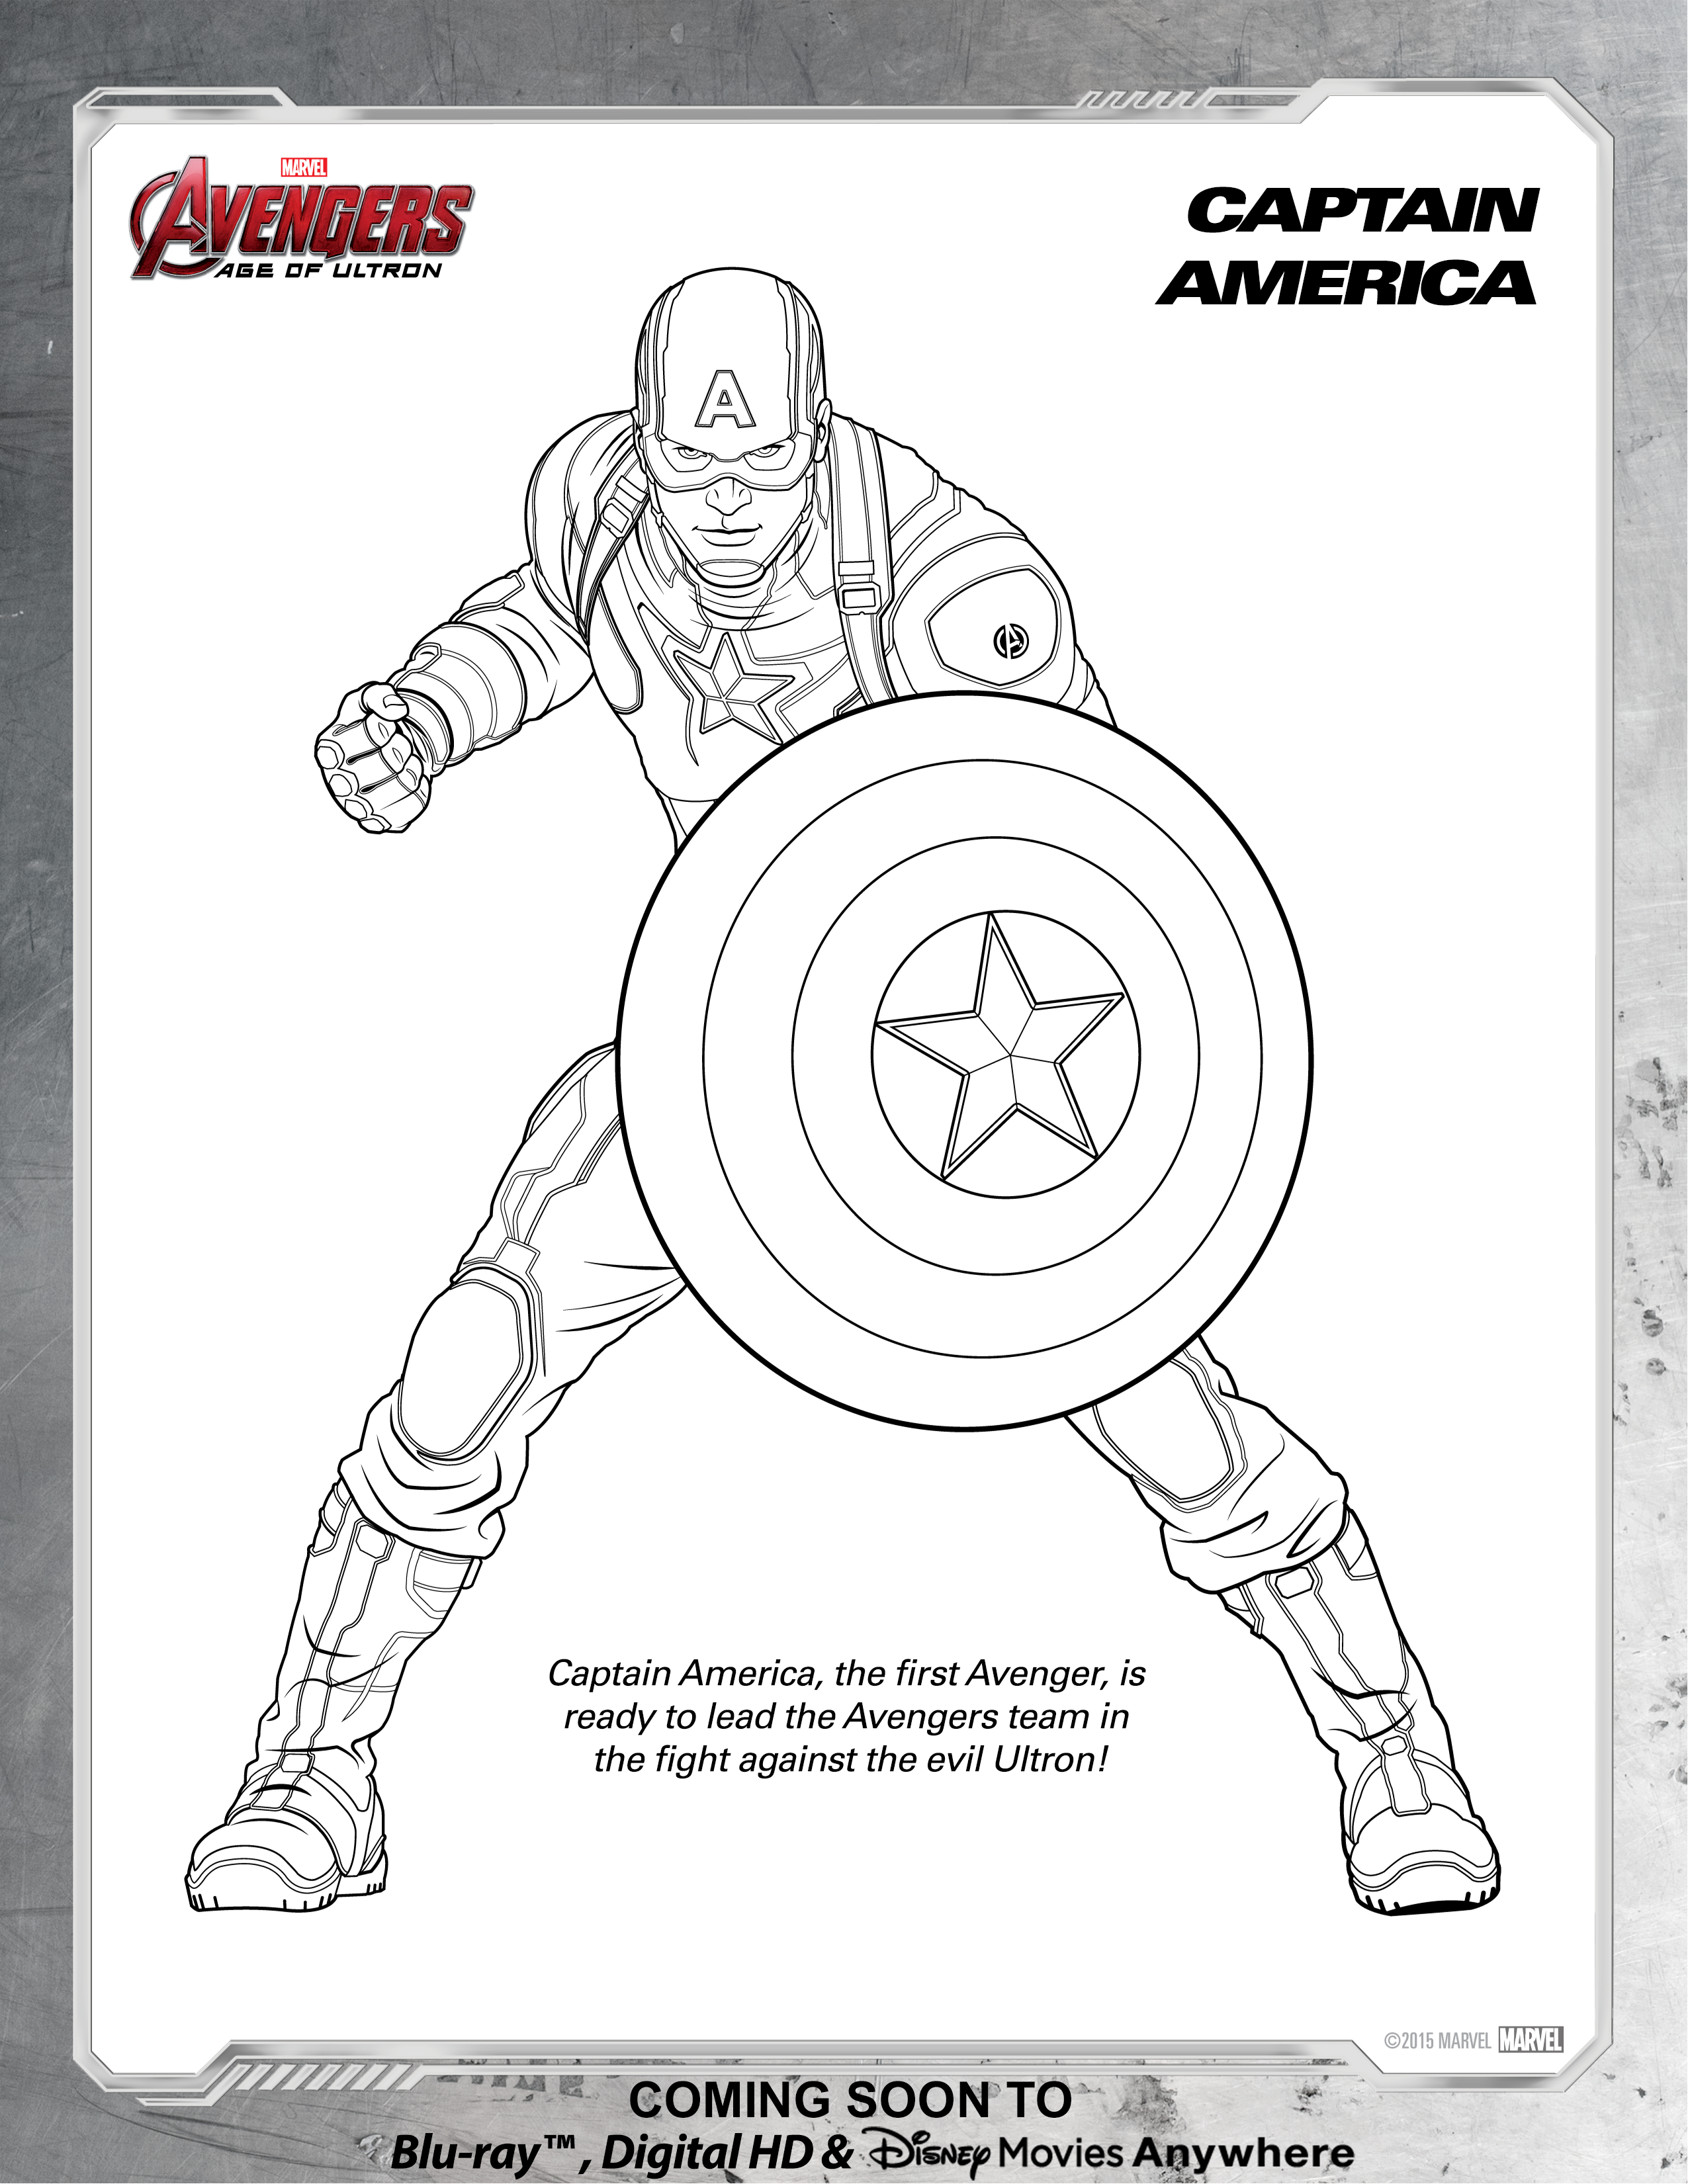 Avengers Captain America Coloring Page | Disney Movies